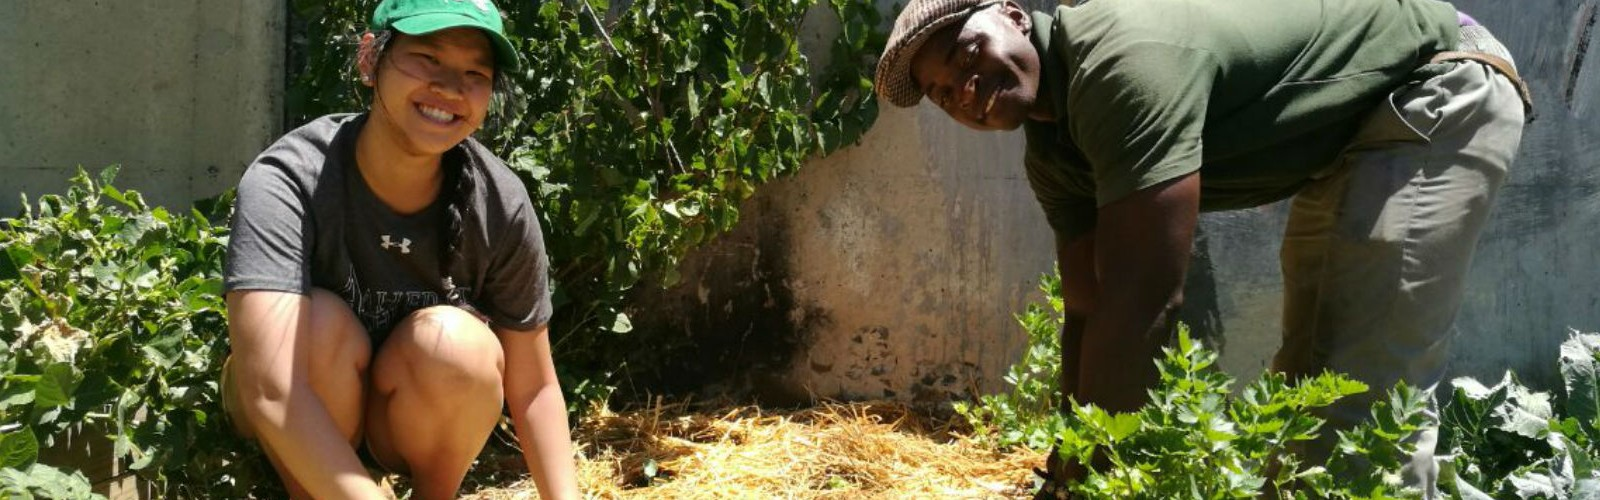 A Day with Vera, Food Security and Urban Farming Intern